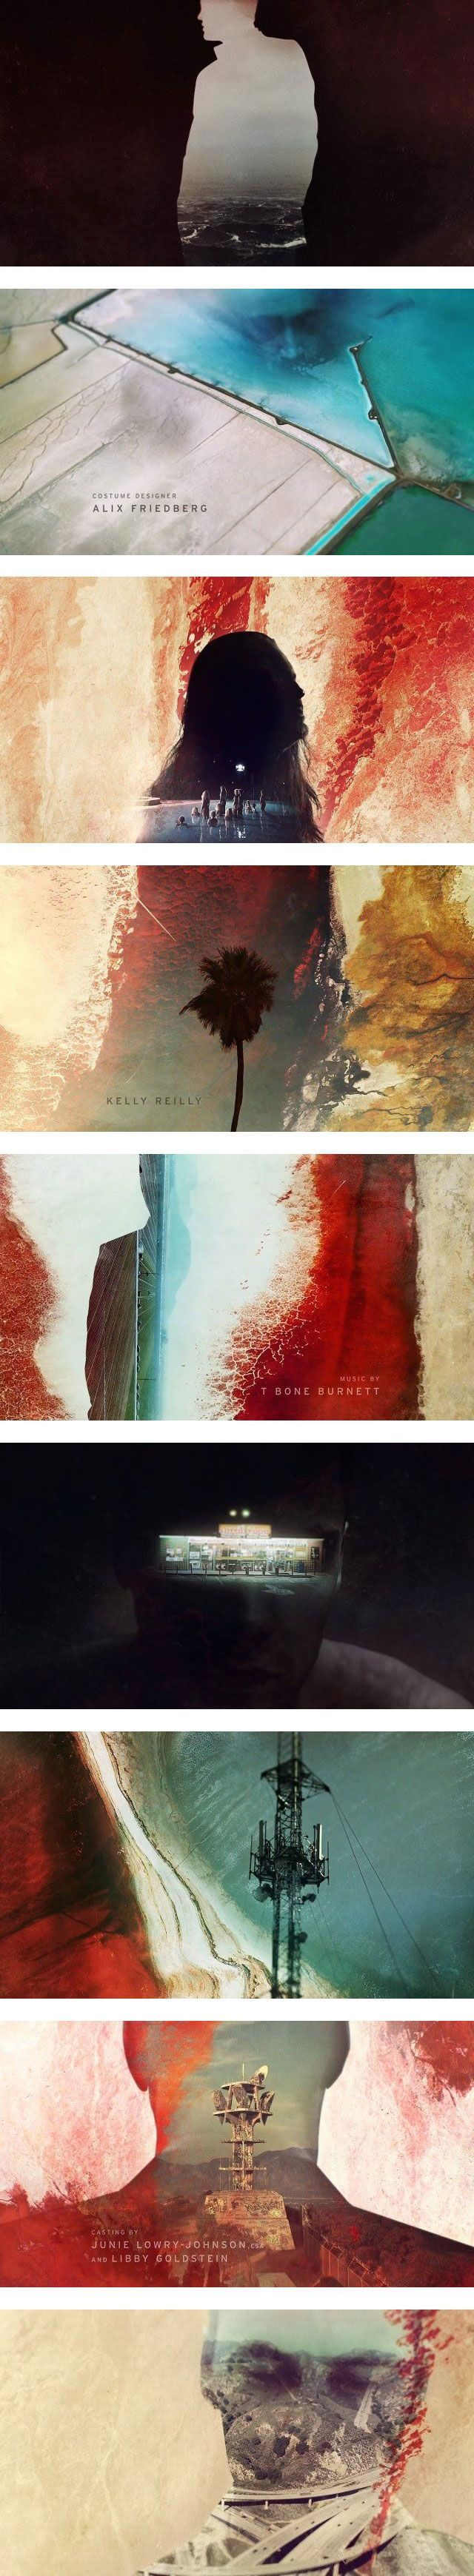 motion graphics/ storyboards/ styleframes | True Detective Season 2 Opening Credits